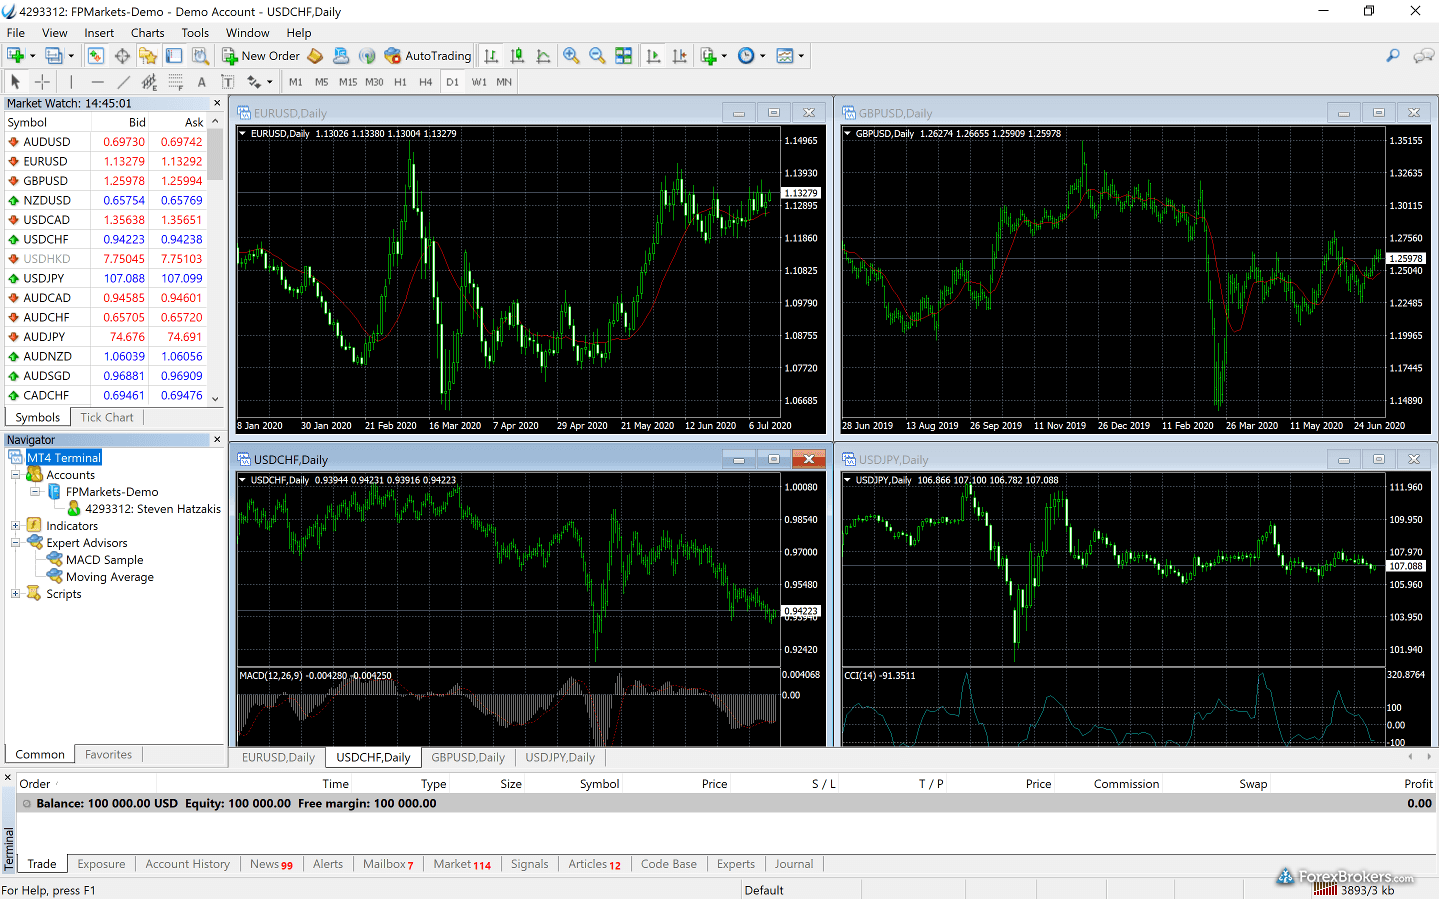 FP Markets MetaTrader4 Desktop